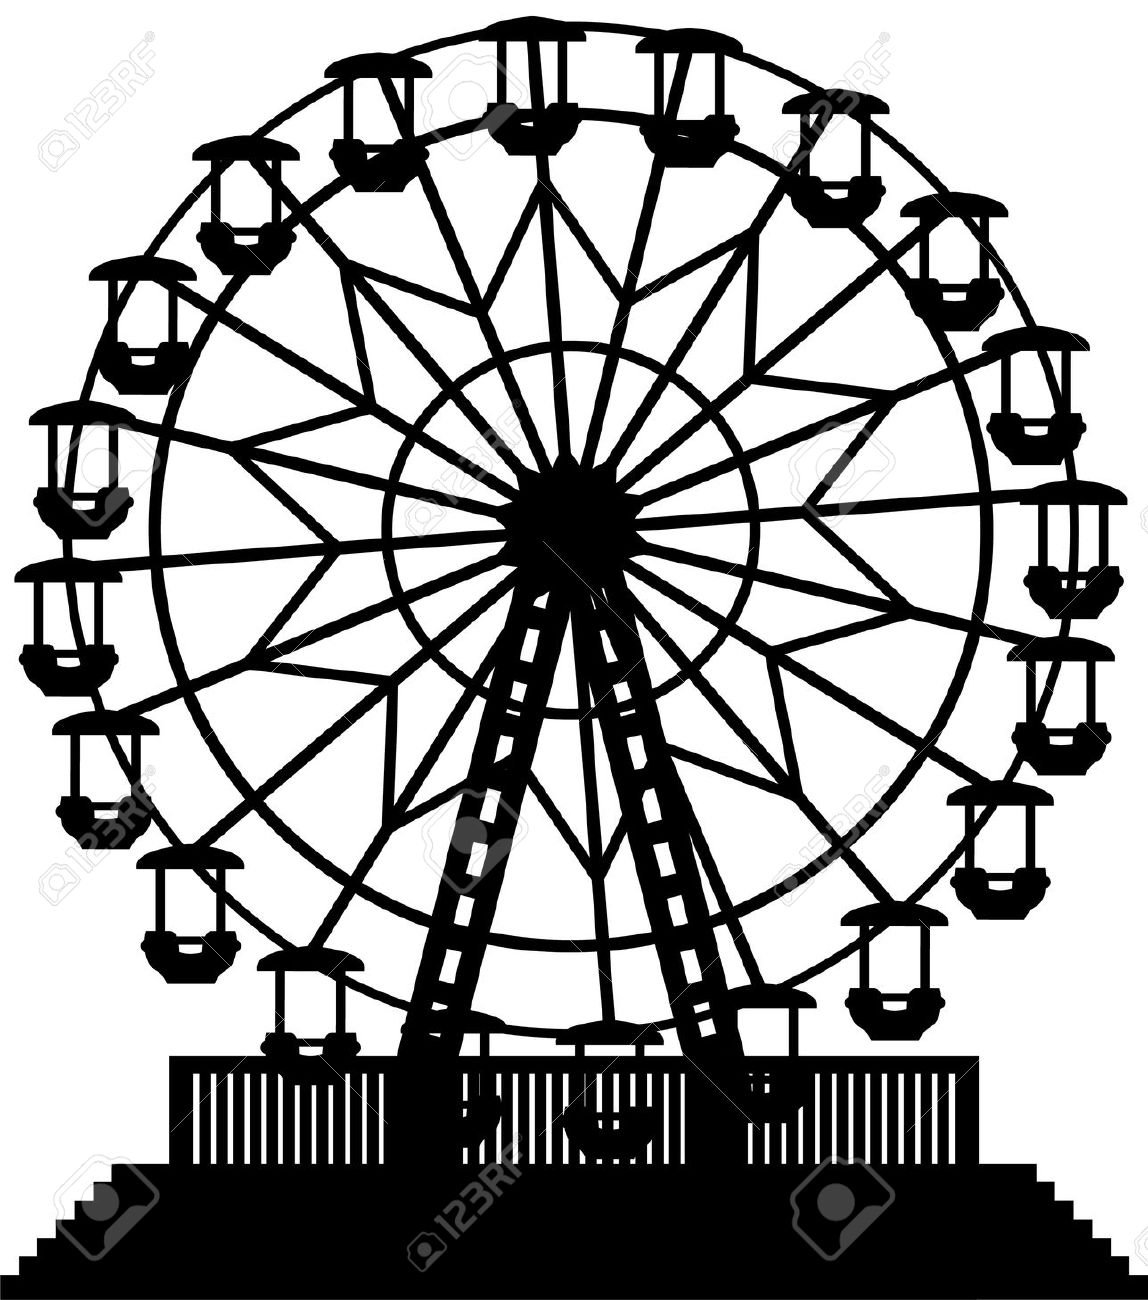 Ferris Wheel Royalty Free Cliparts, Vectors, And Stock.